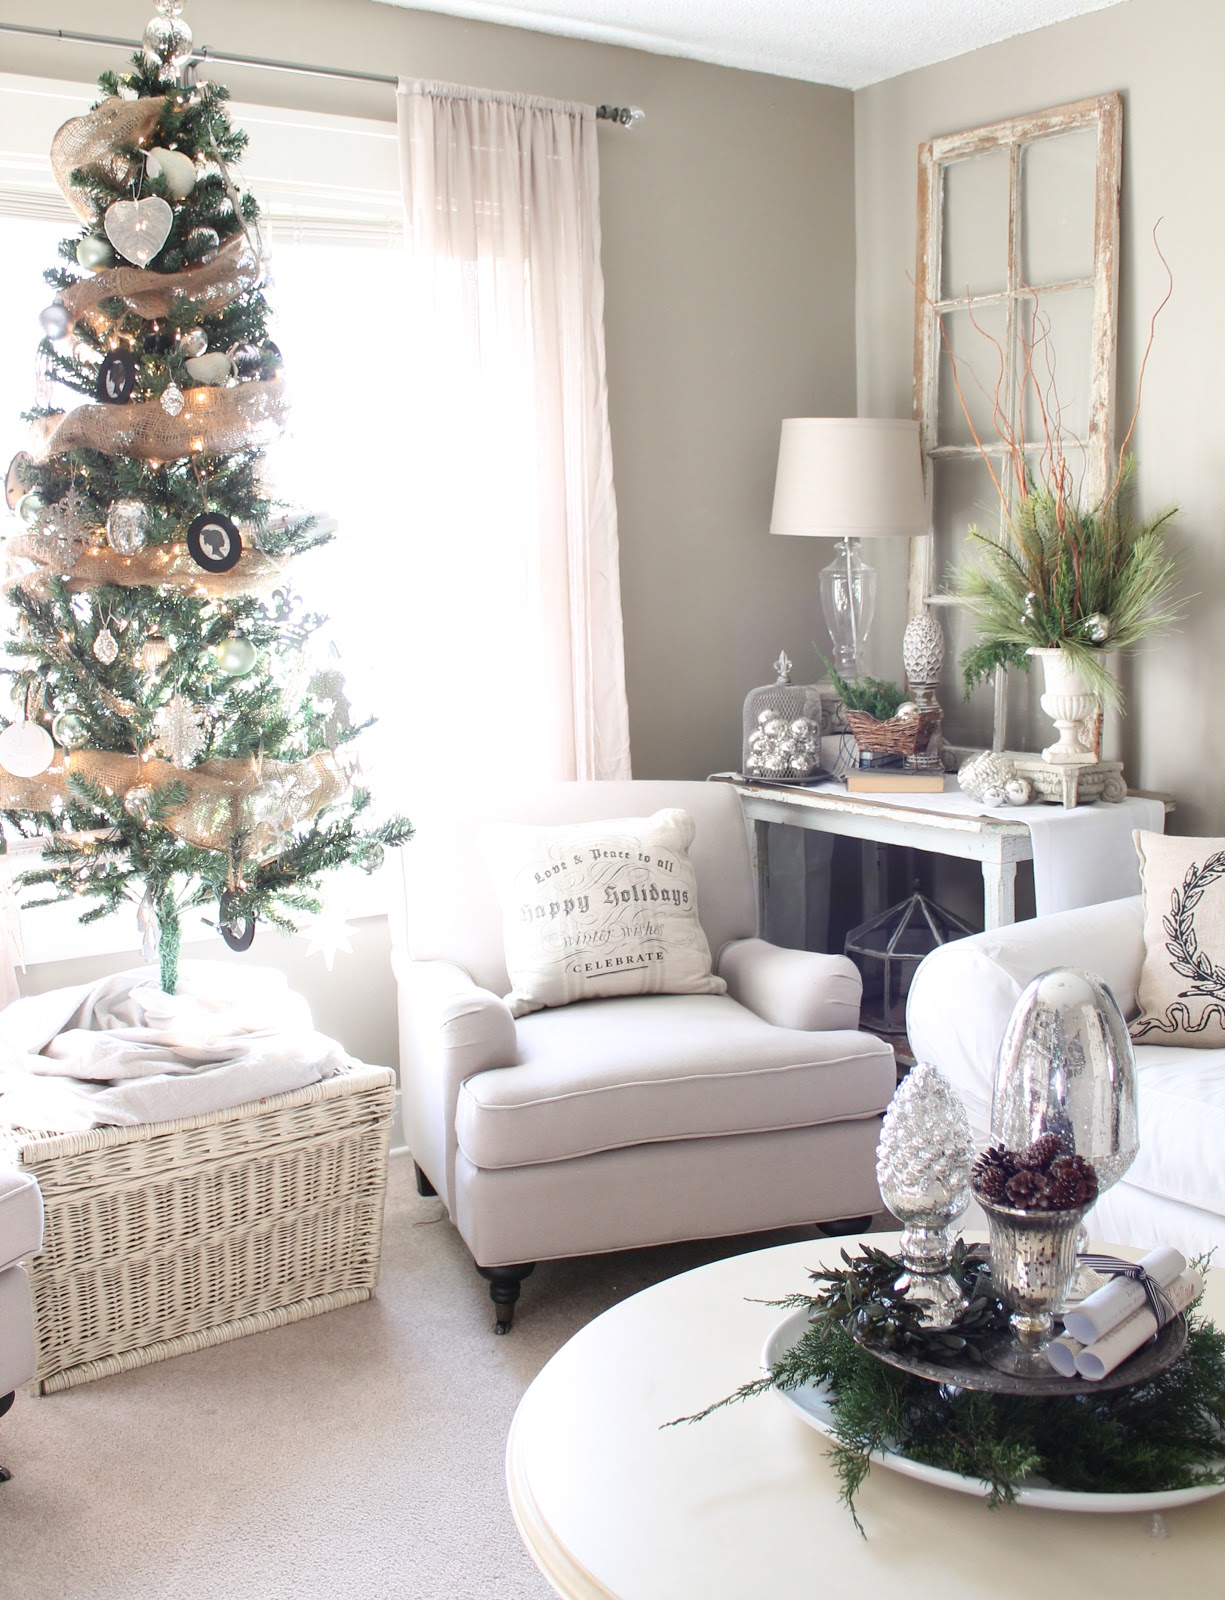 Decorate Living Room With One Window: 12th And White: Our Christmas Living Room- Part 2